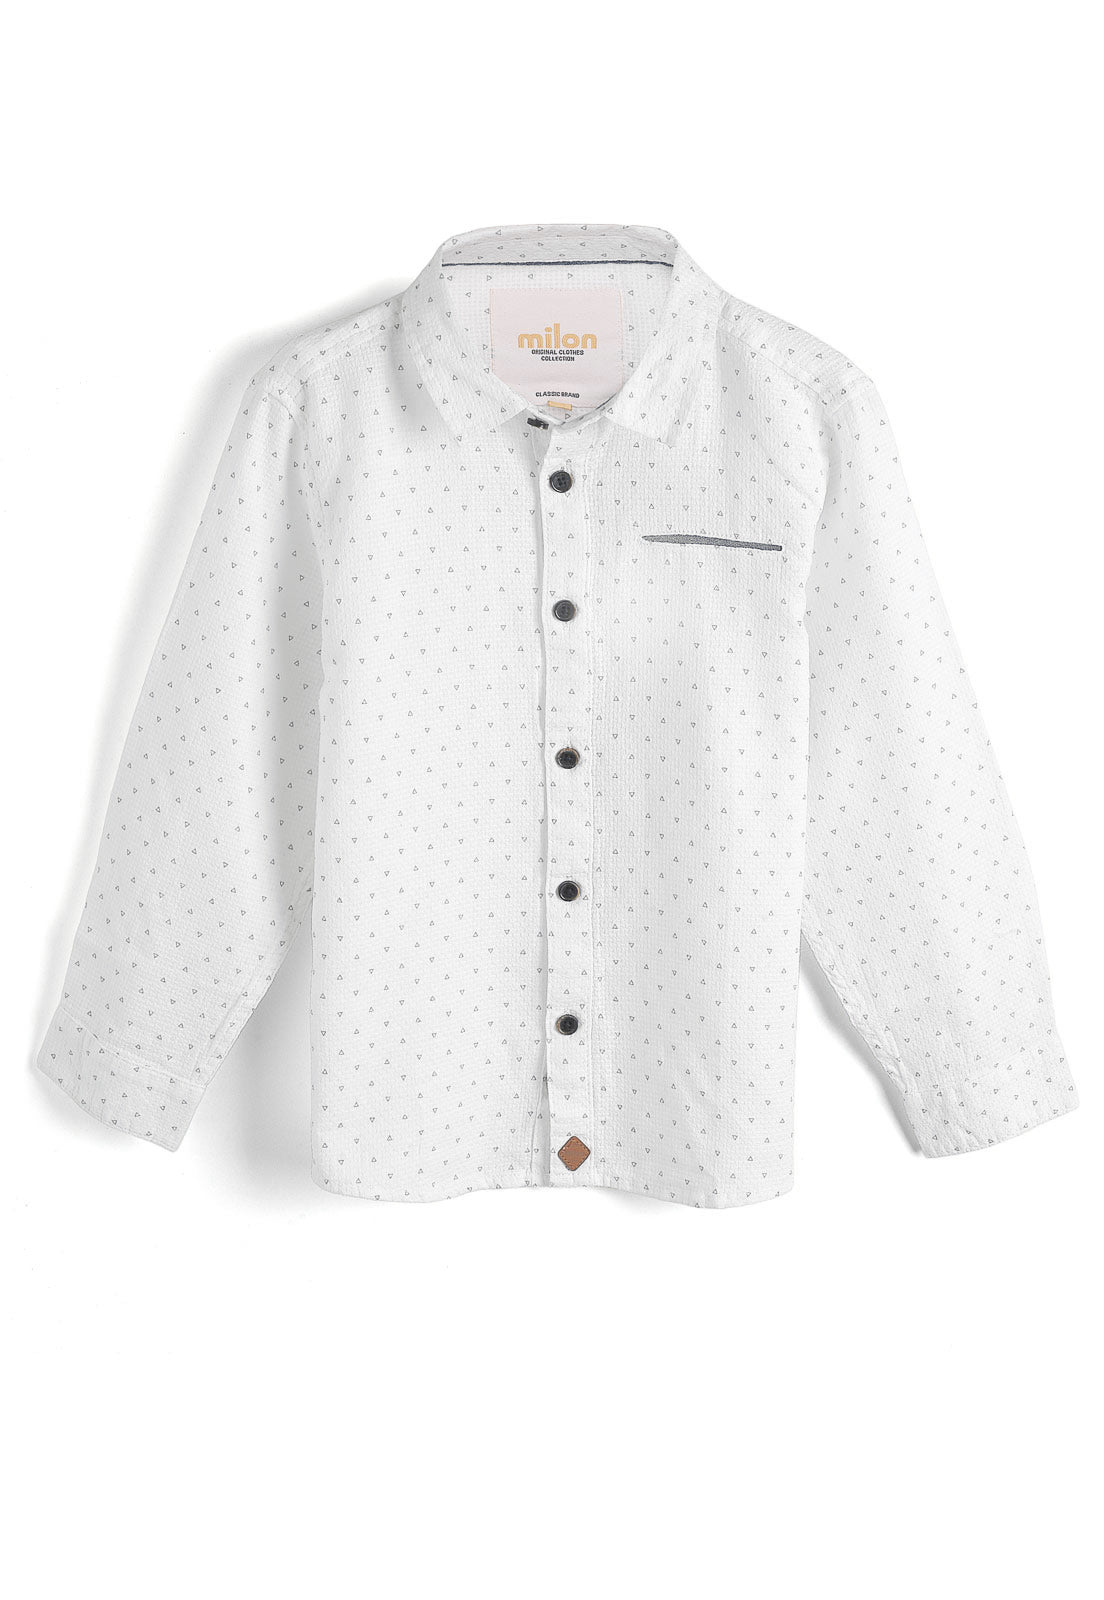 Milon white shirt 12235